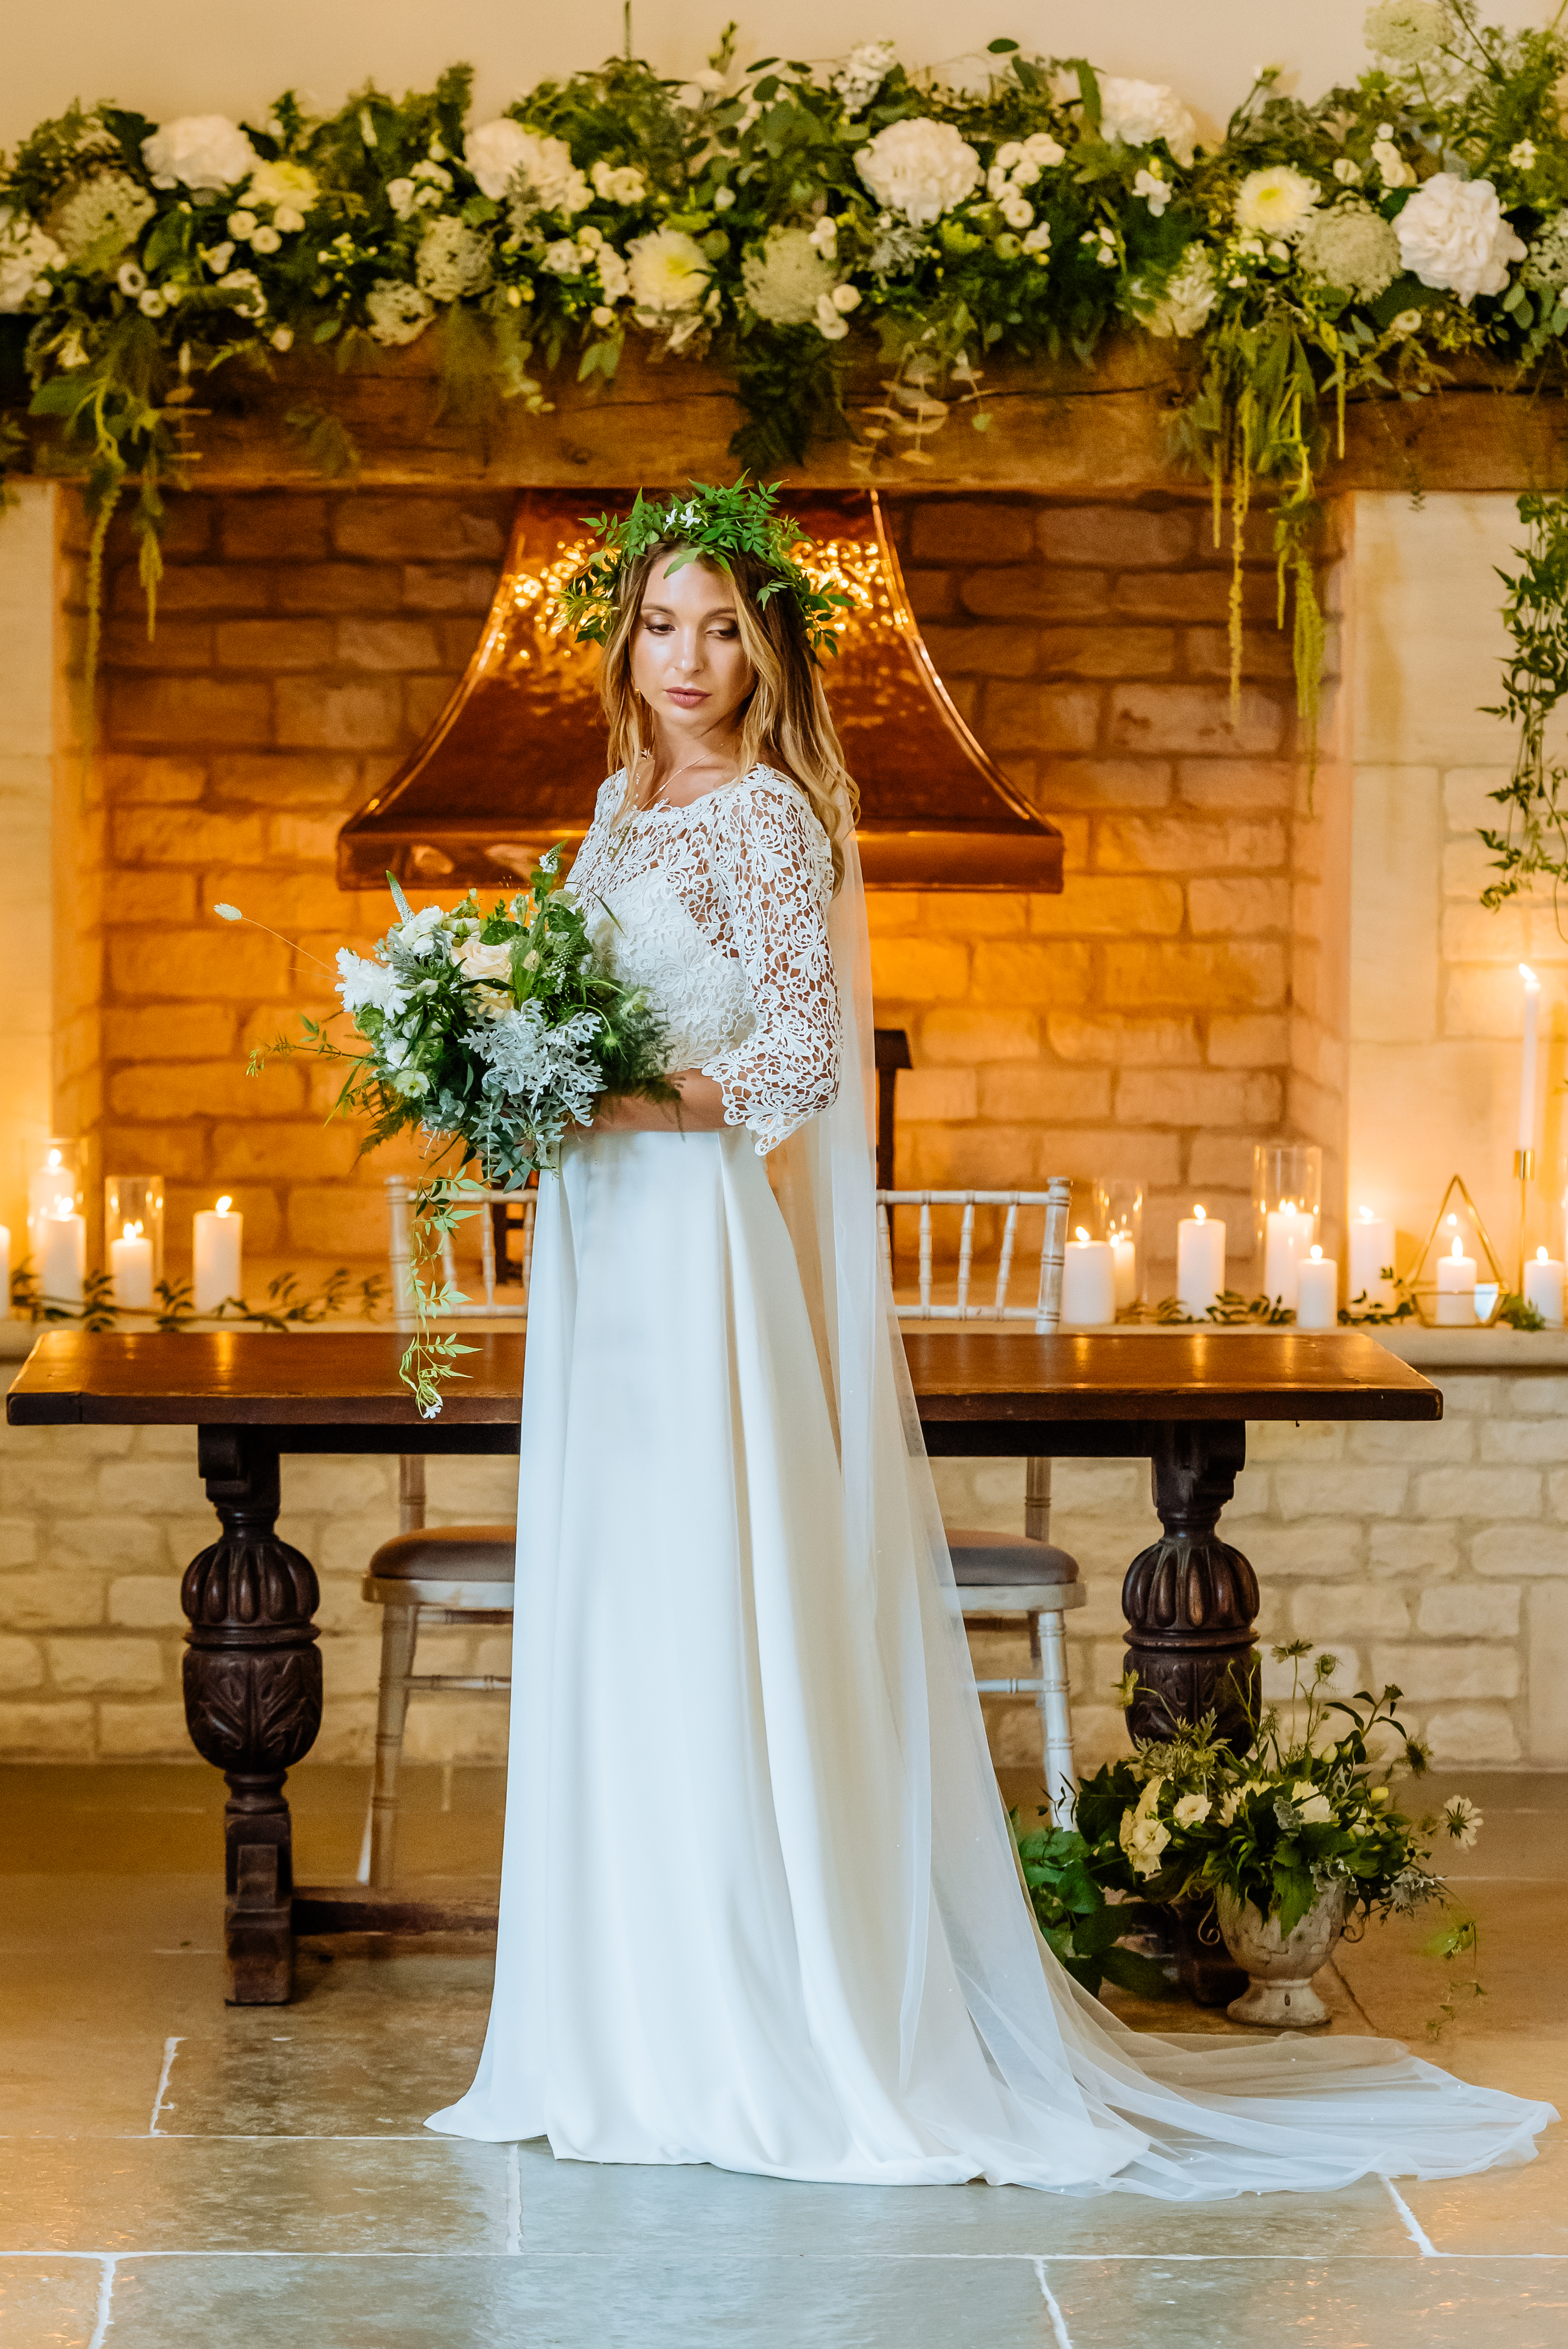 A wedding dress from Boho Bride's Freedom Collection, a collection of wedding dress components that give the bride the freedom to choose her own, unique wedding dress